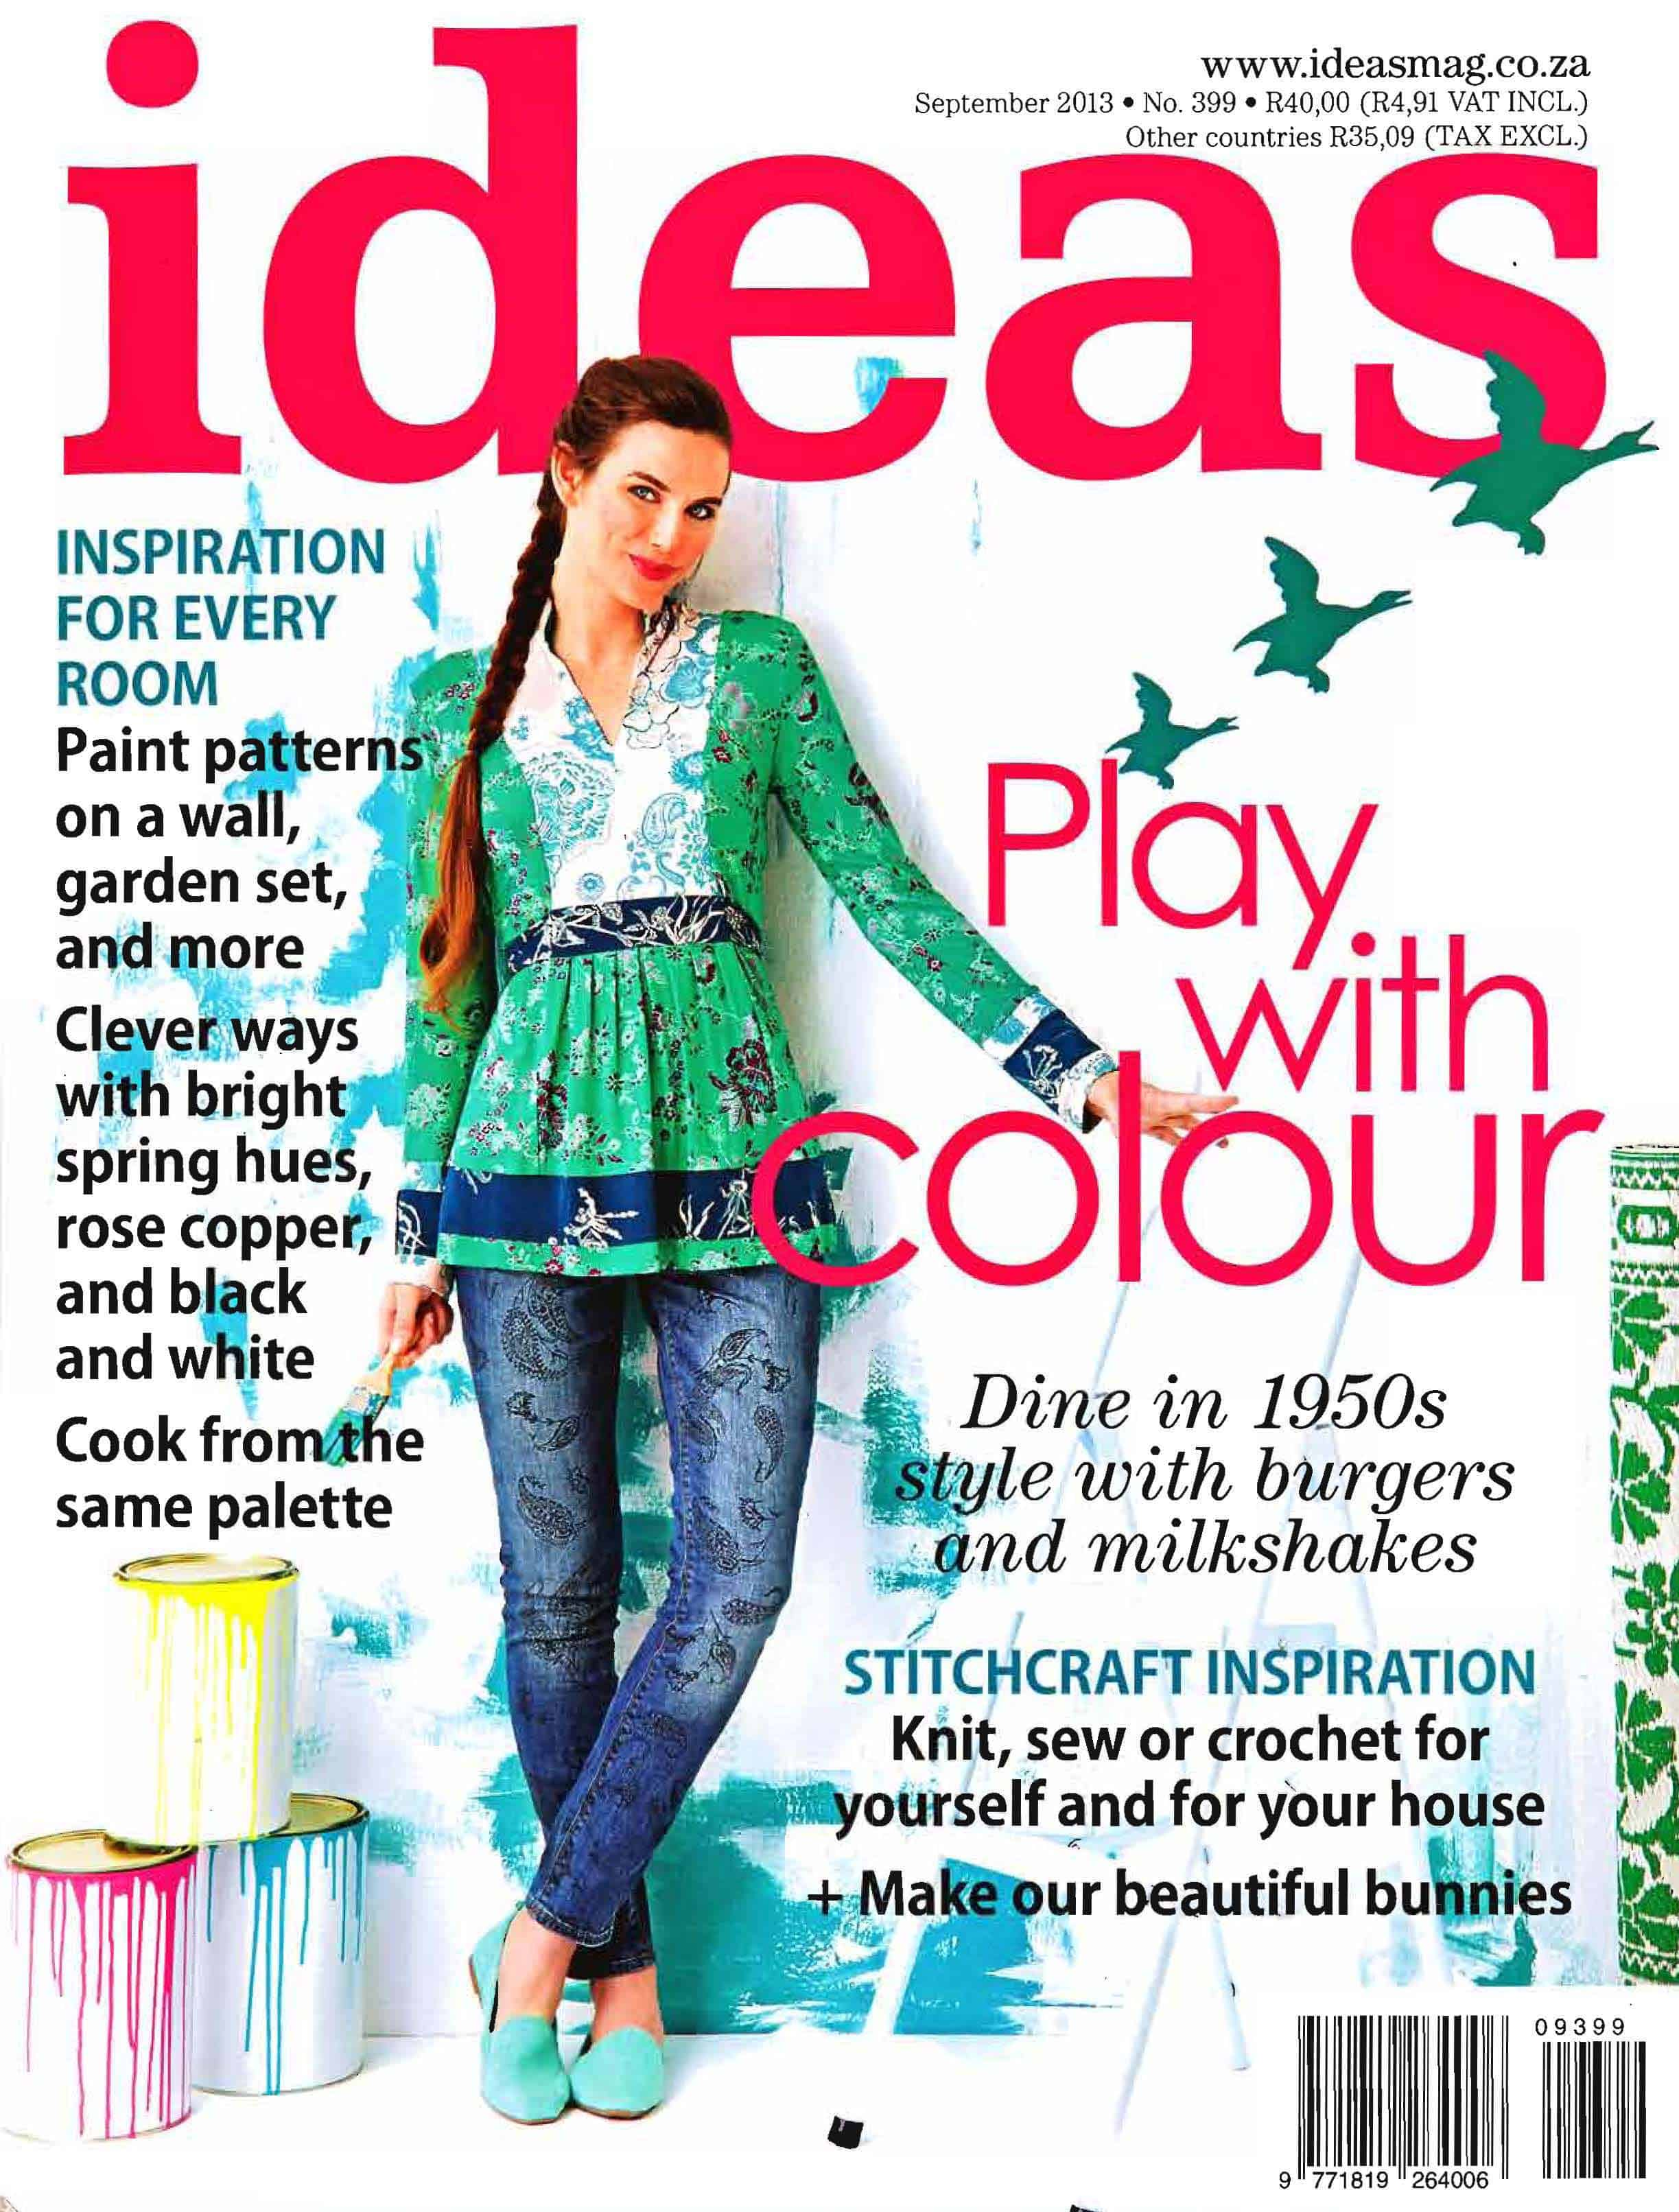 Ideas Mag - front cover - Sept 2013